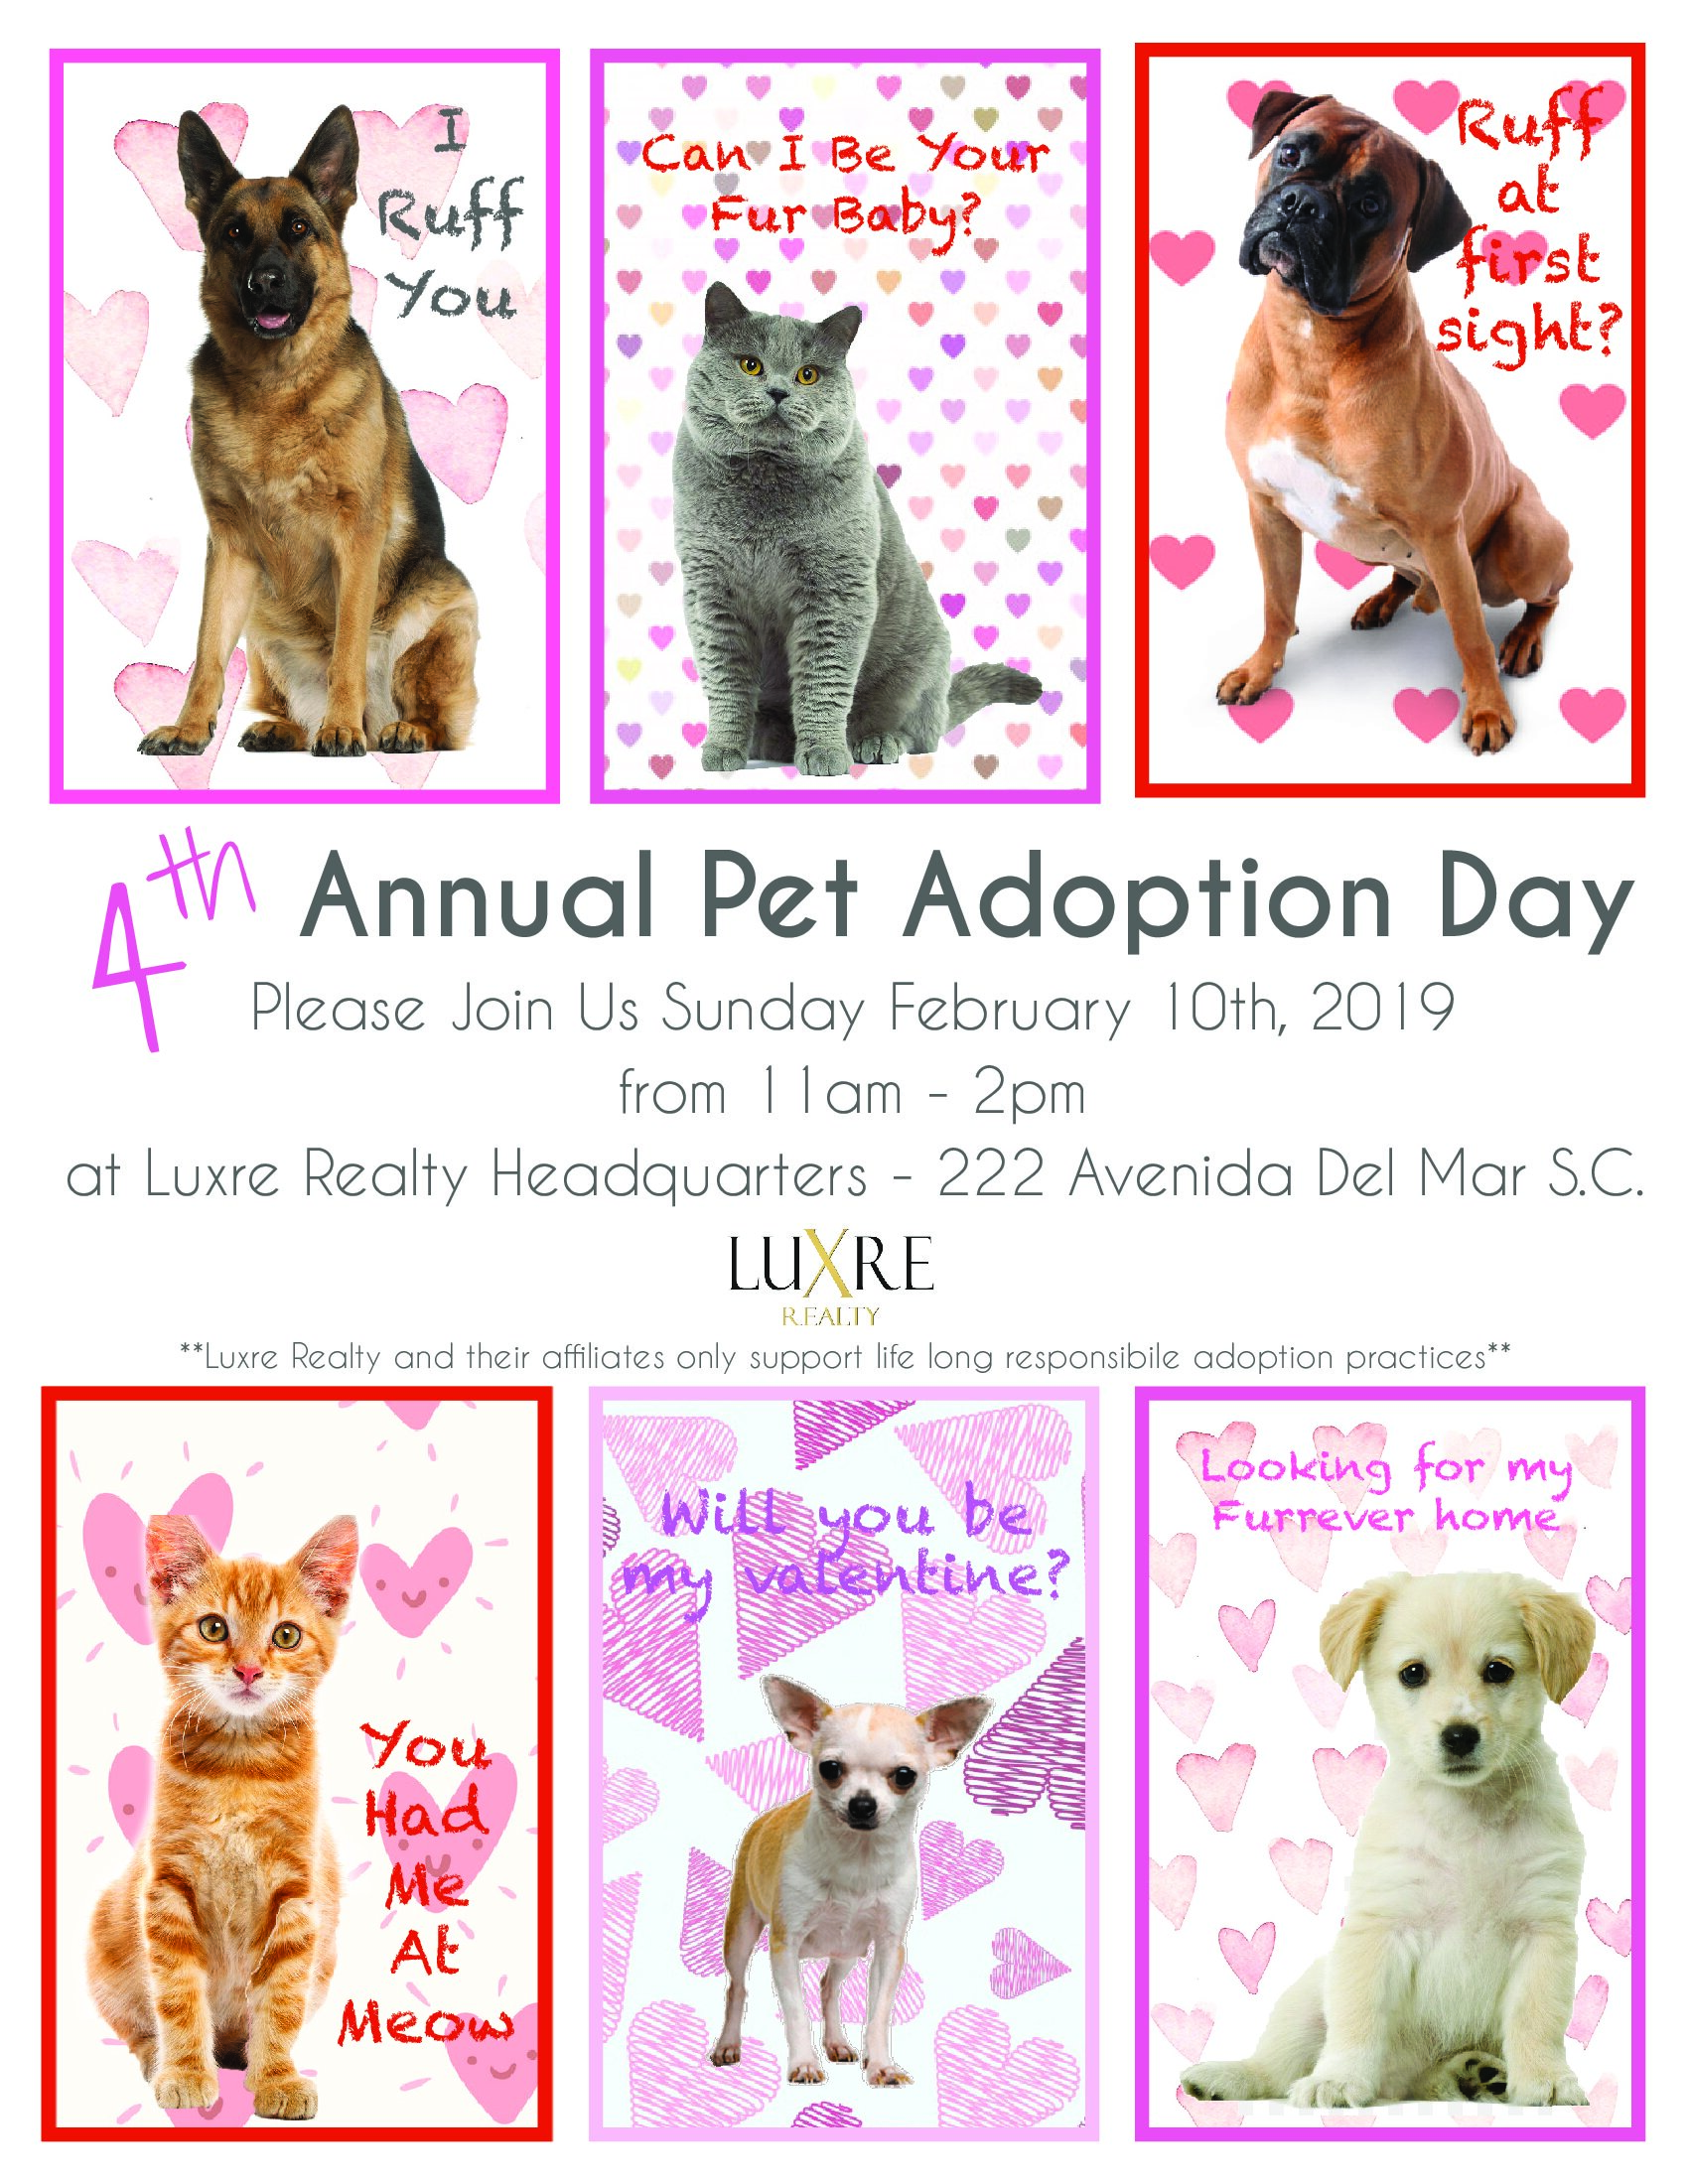 Pet Adoption Flyer 2019 4th annual.jpg